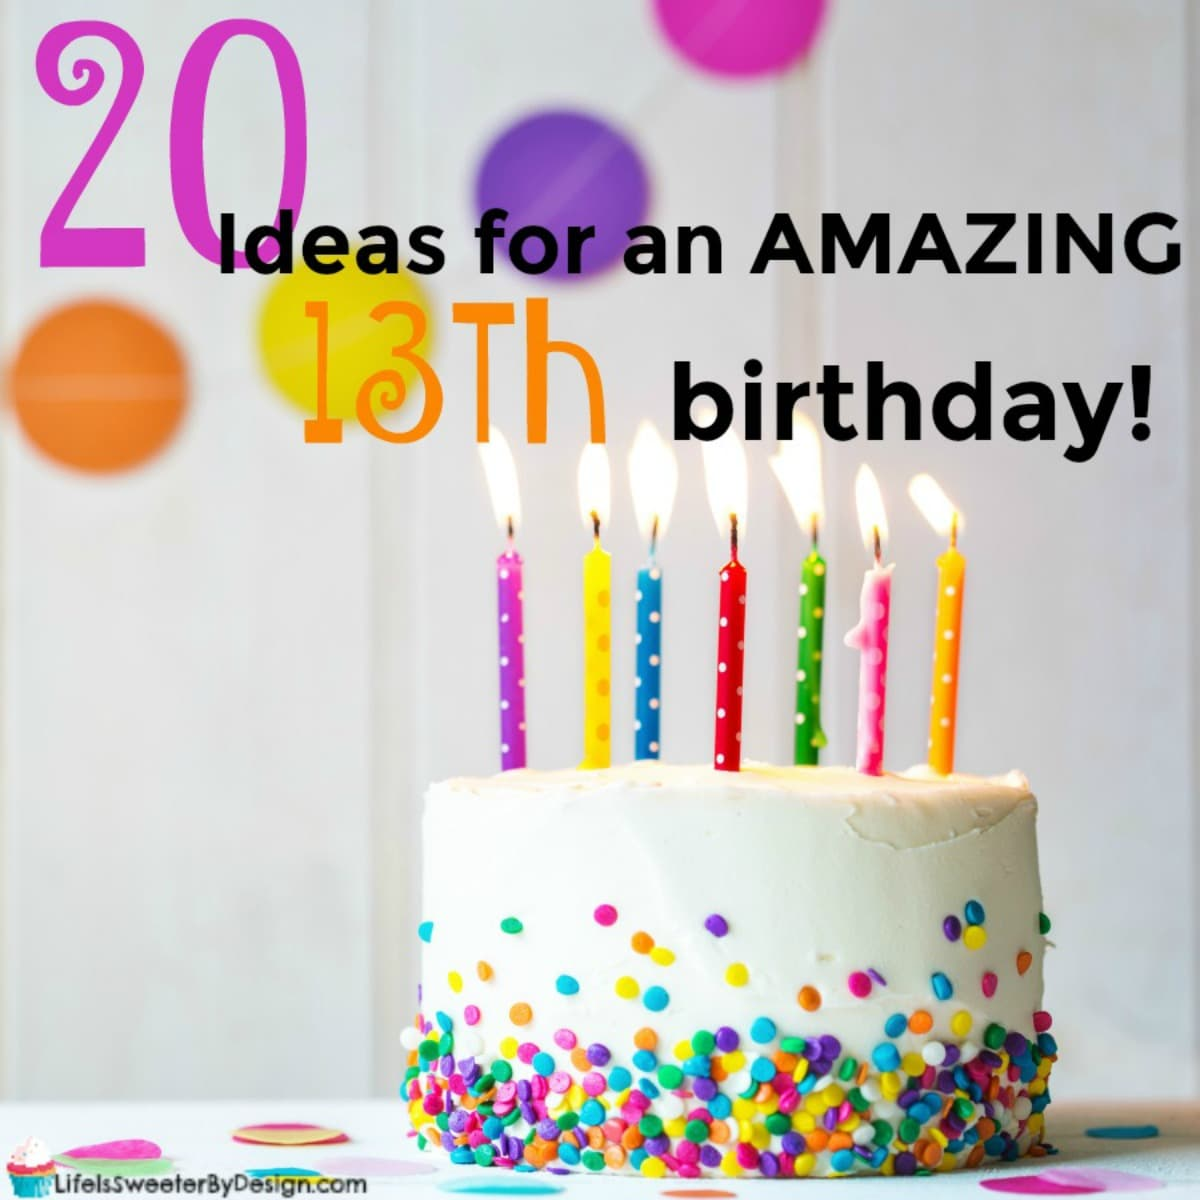 20 Ideas for a Girls 13th Birthday - Life is Sweeter By Design